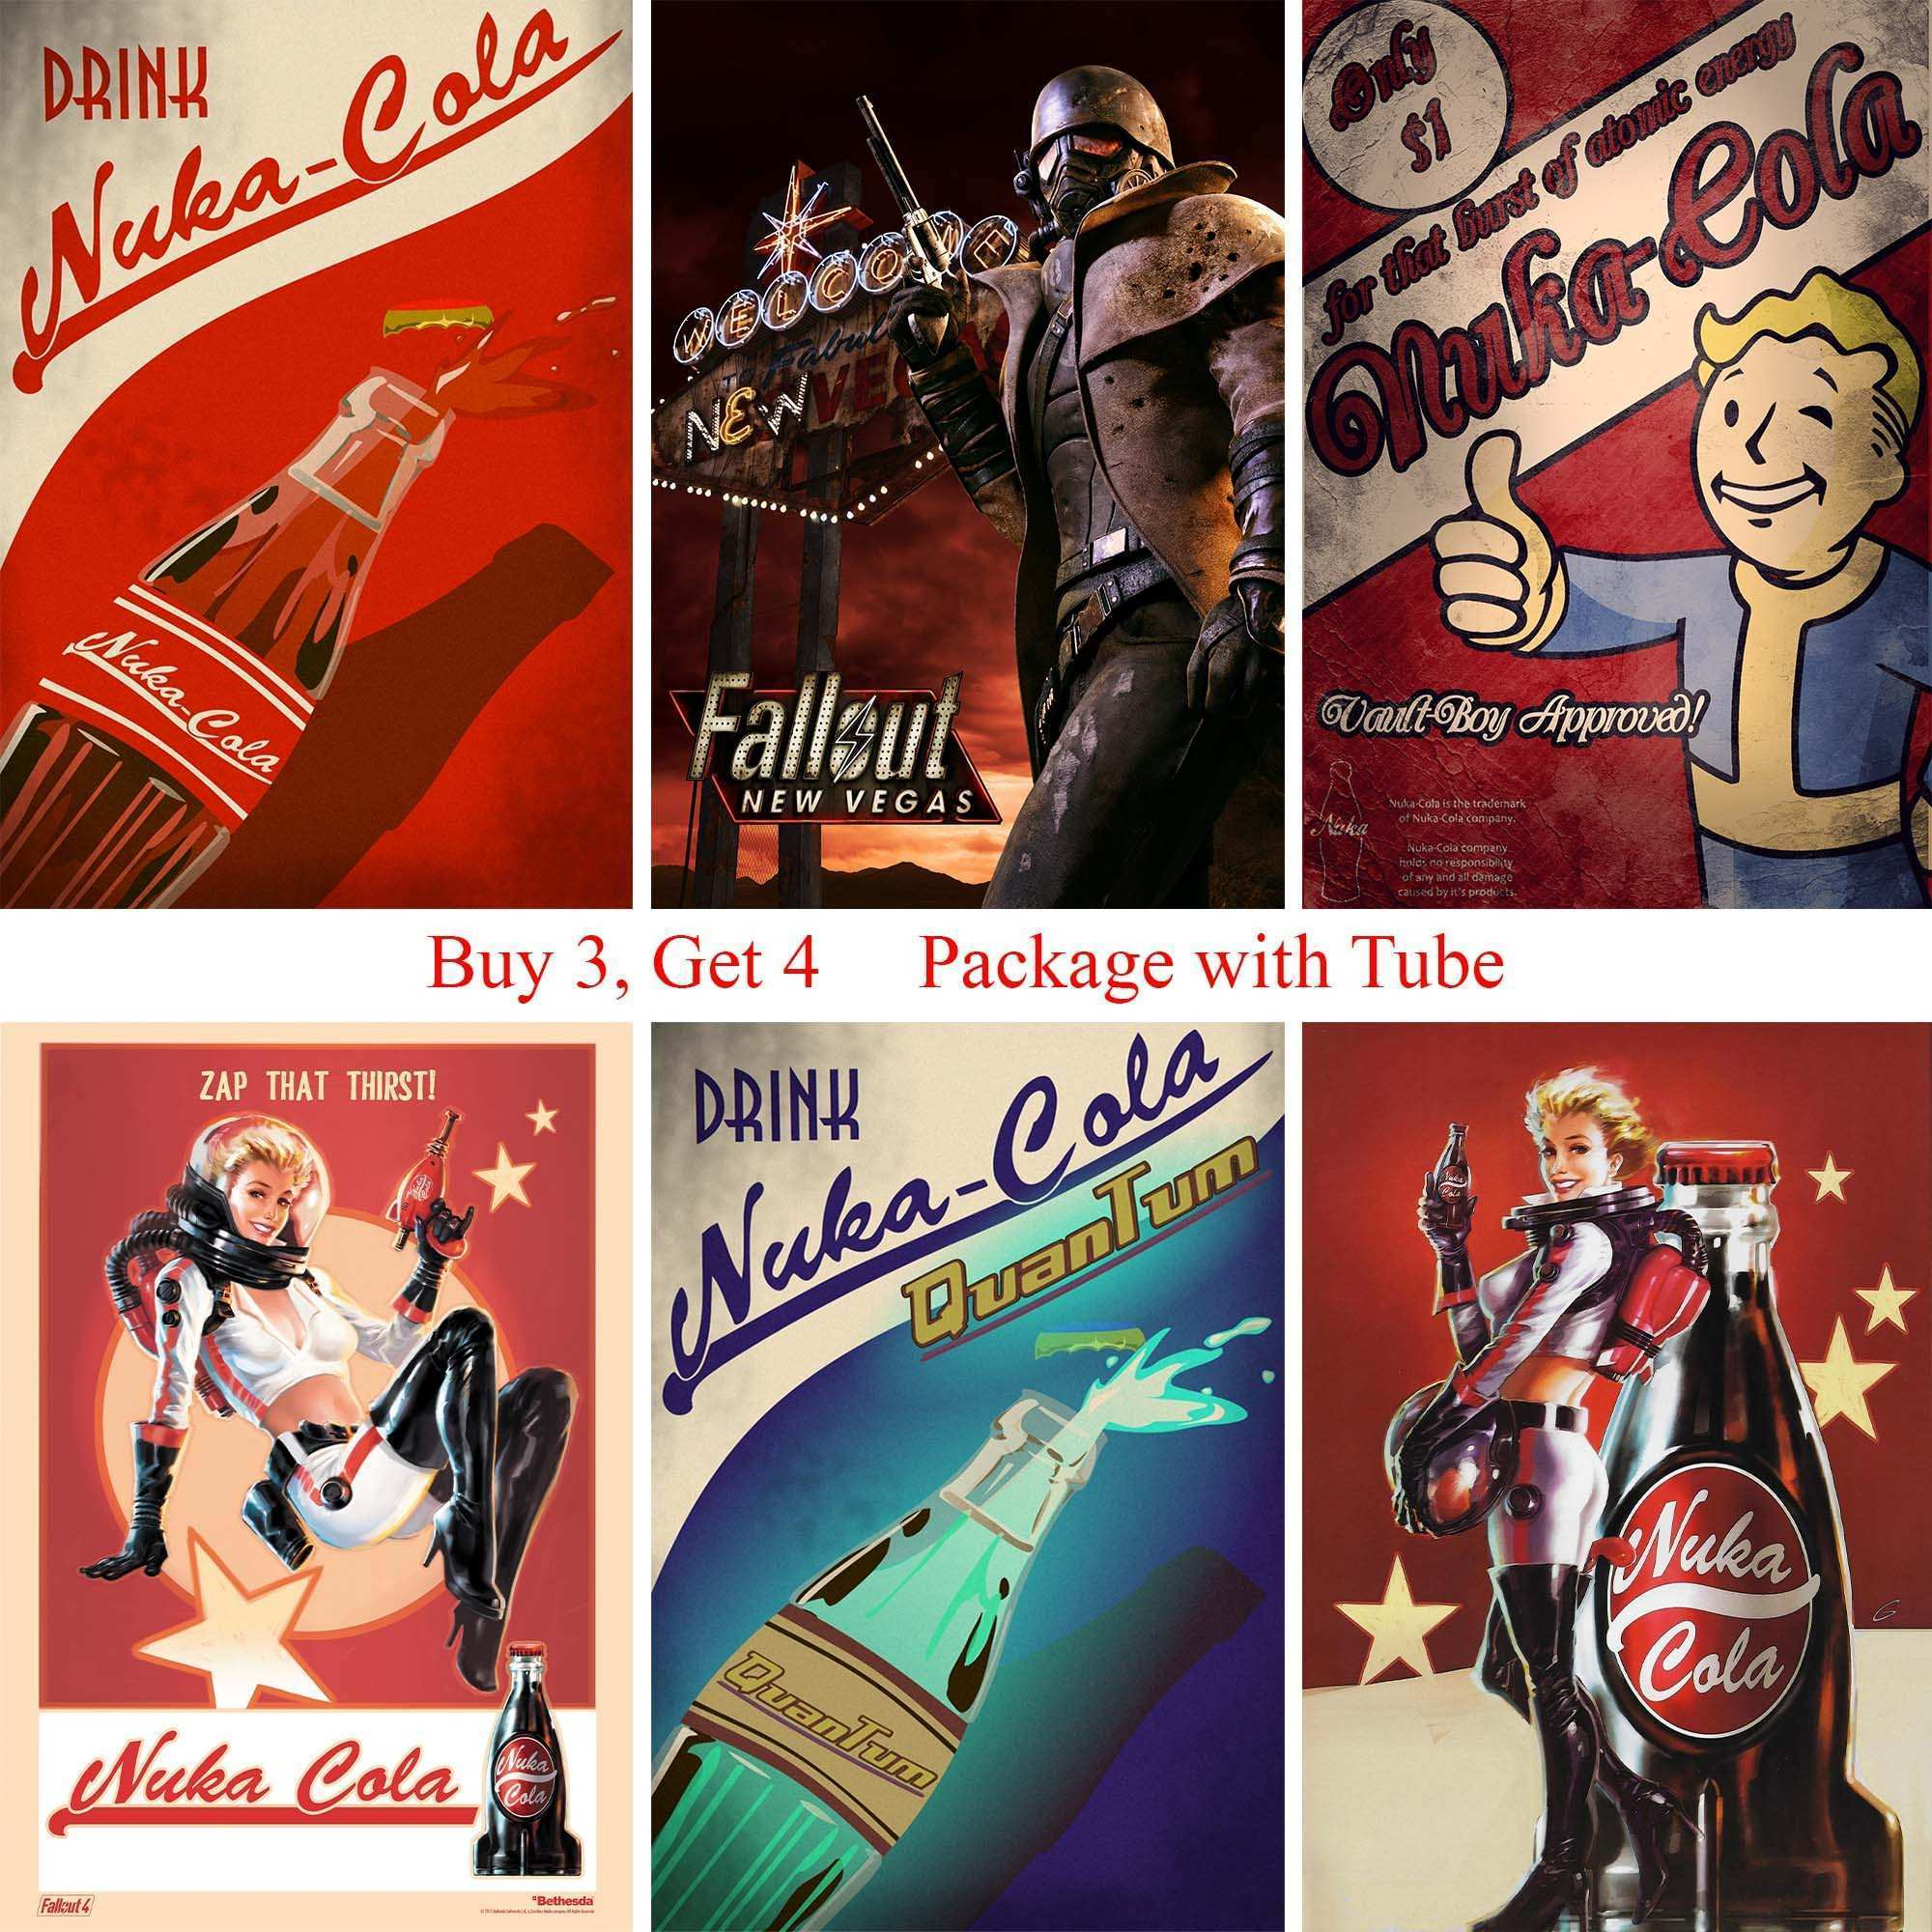 Fallout 4 Game Posters High Quality Wall Stickers White Coated Paper